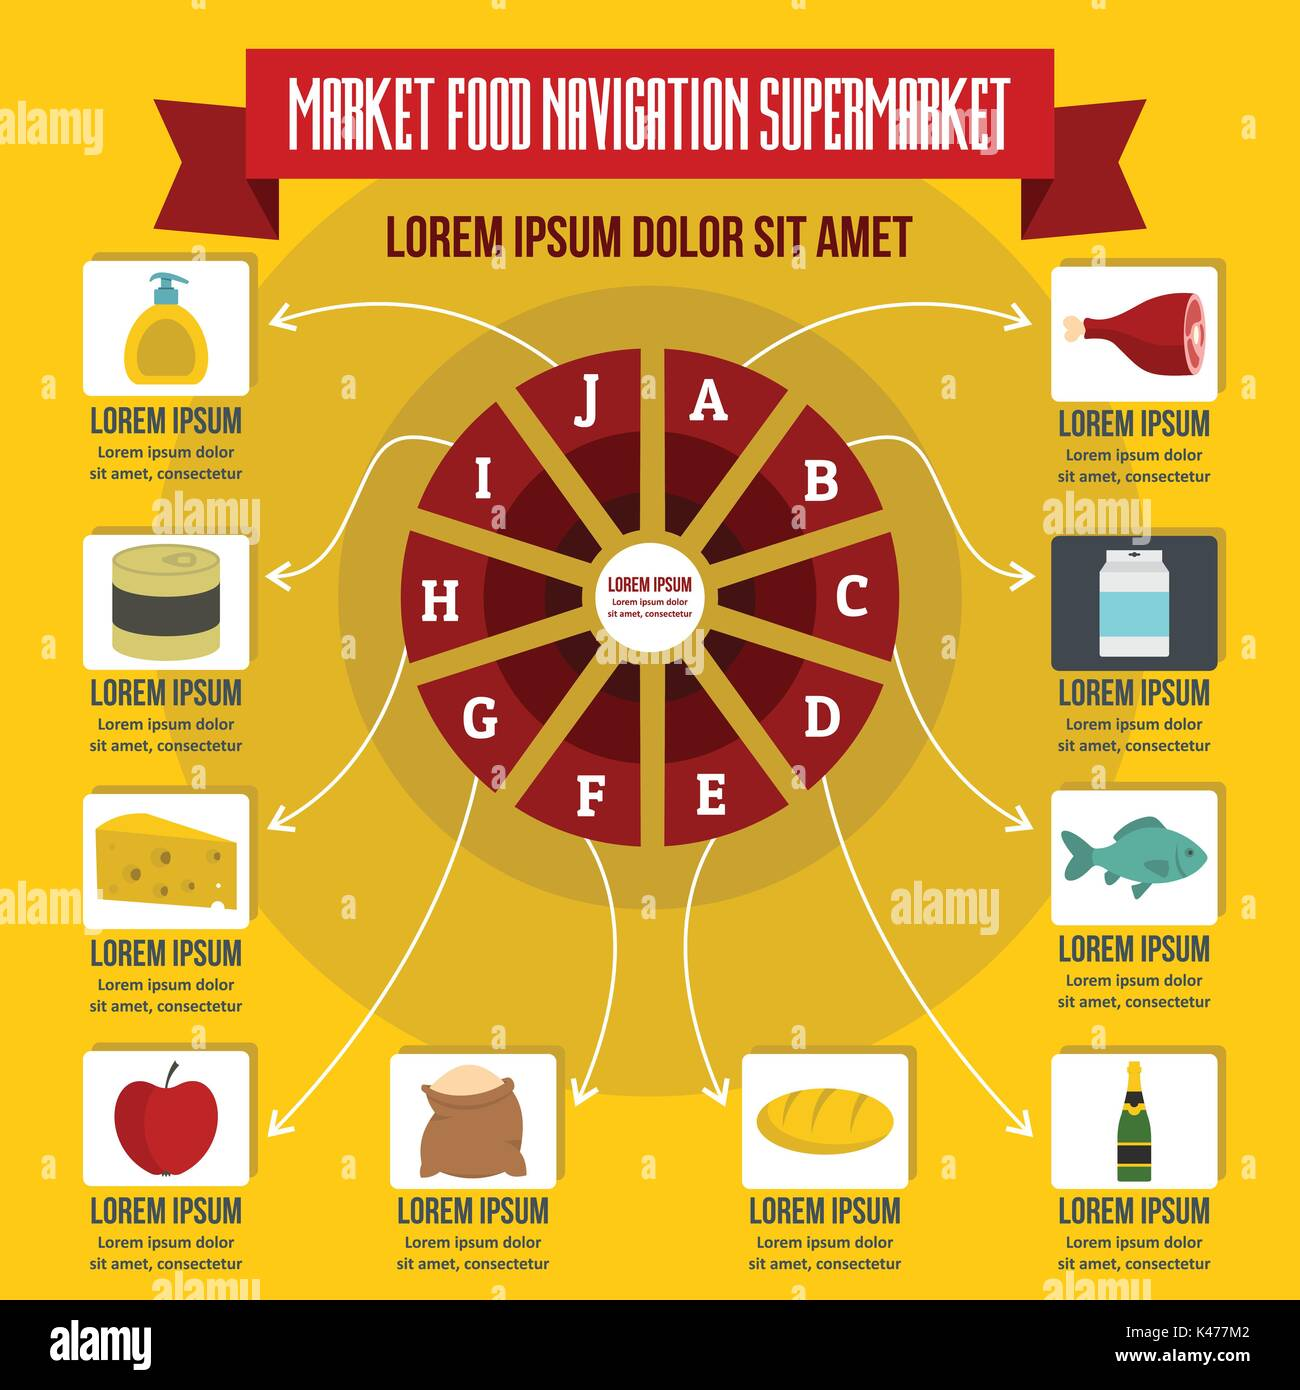 Market food navigation infographic, flat style - Stock Vector